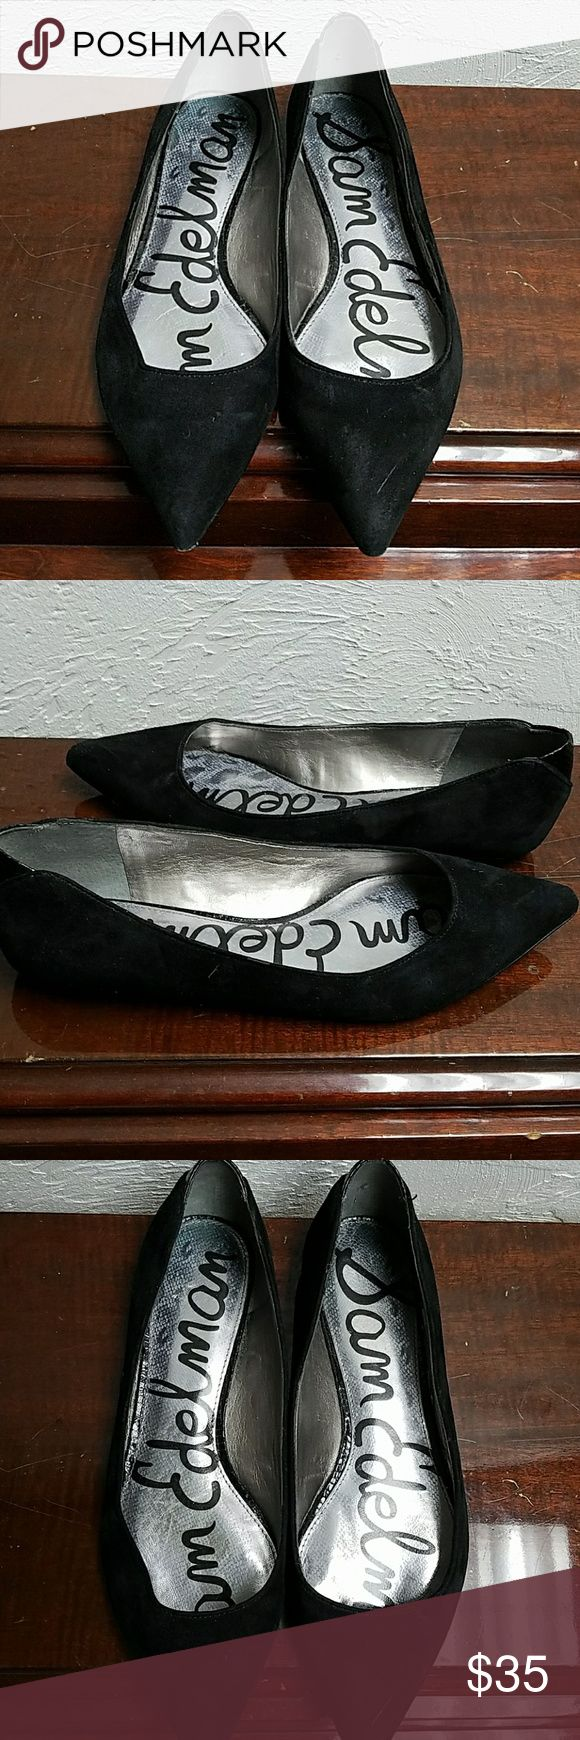 Sam Edelman suede Flats size 7.5 Suede pointy-toed Flats, normal wear and tear. Sam Edelman Shoes Flats & Loafers